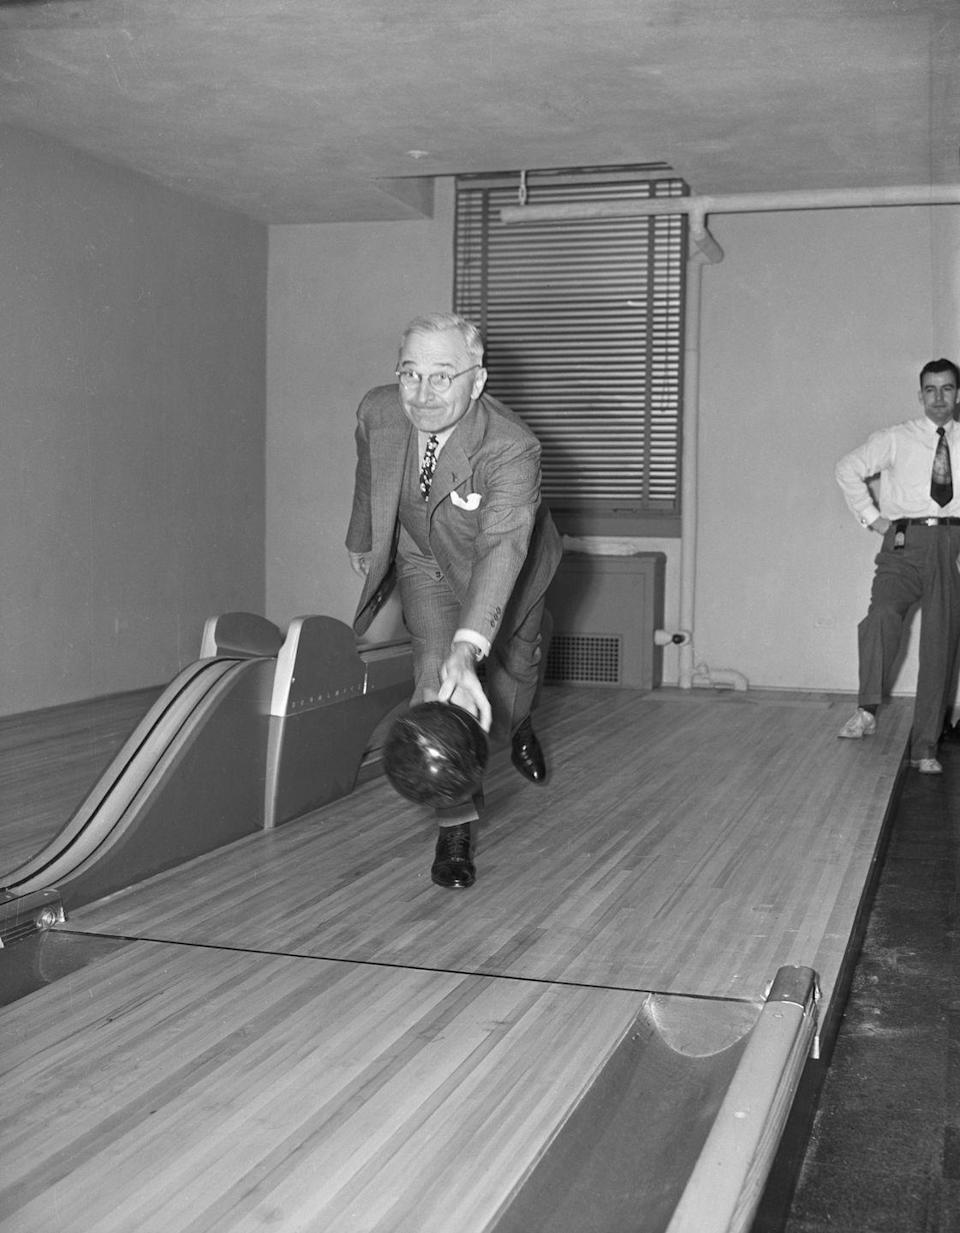 "<p>As a birthday present to President Harry Truman, a two-lane bowling alley was installed in the White House. Truman didn't use the gift much, but it was reported that his staff did, and that they even <a href=""http://mentalfloss.com/article/22413/white-house-gift-guide-13-unique-presidential-gifts"" rel=""nofollow noopener"" target=""_blank"" data-ylk=""slk:created a bowling league"" class=""link rapid-noclick-resp"">created a bowling league</a>. </p>"